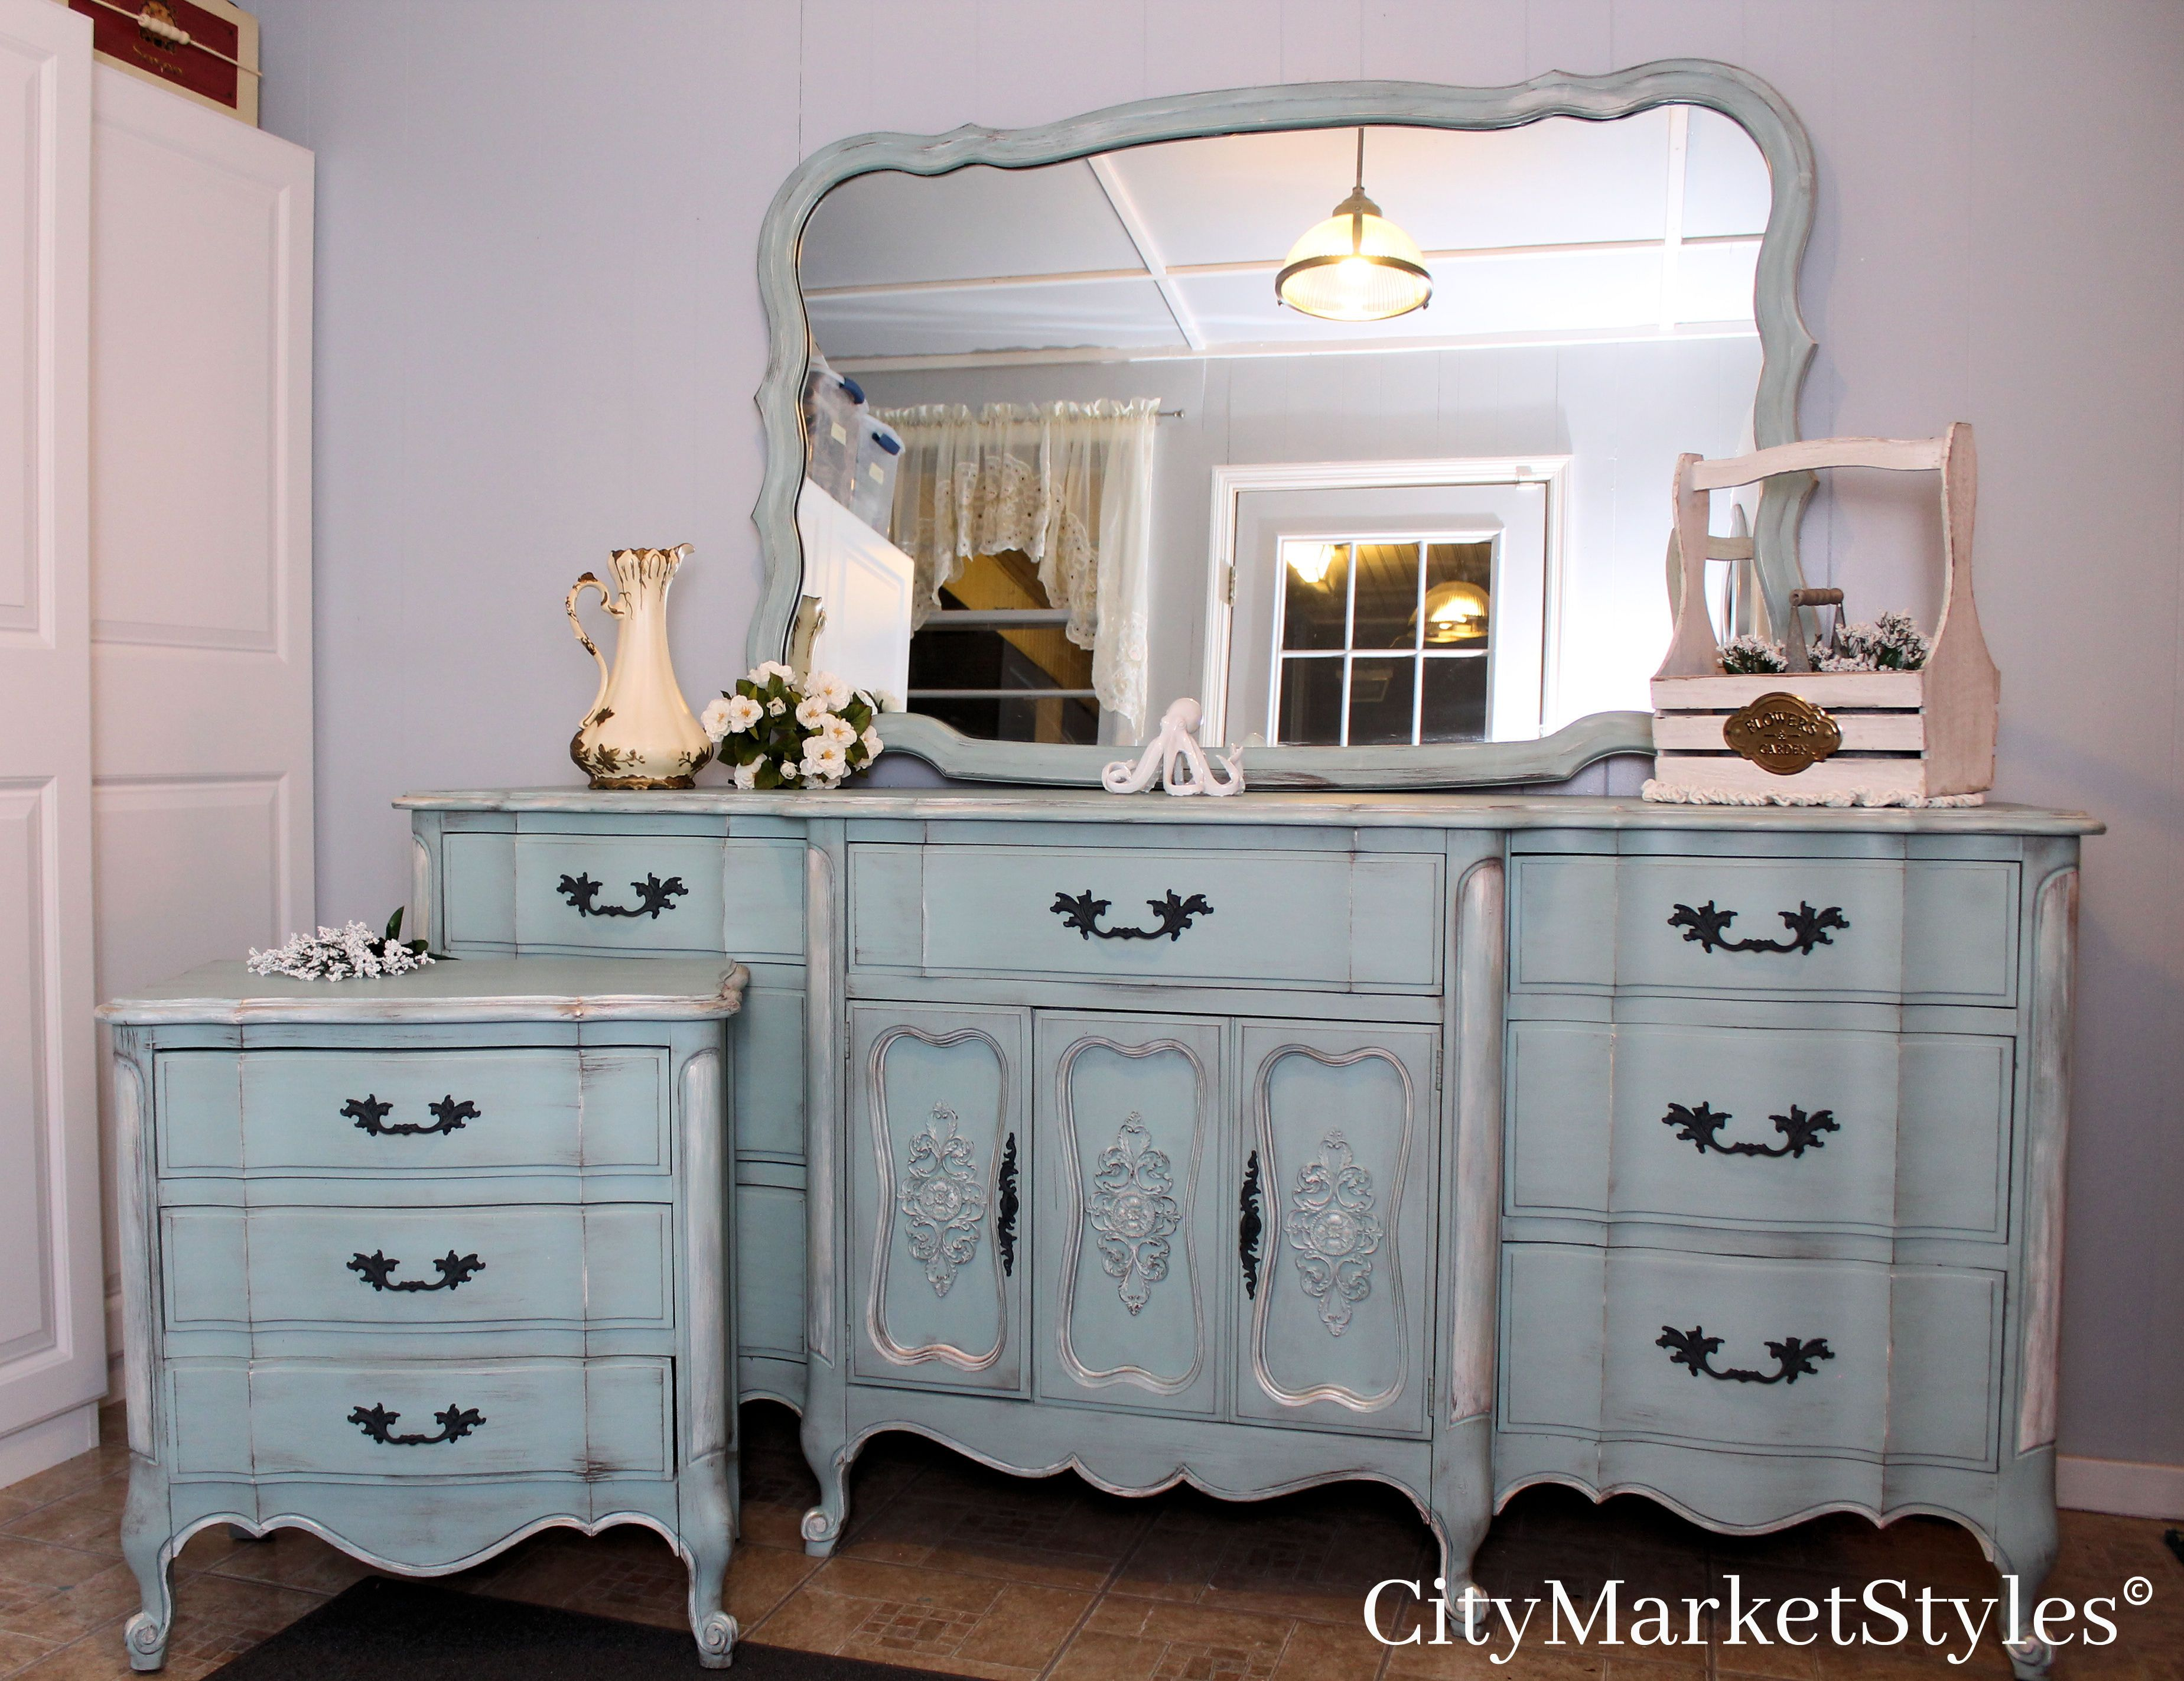 Painted blue french provincial dresser and nightstand by